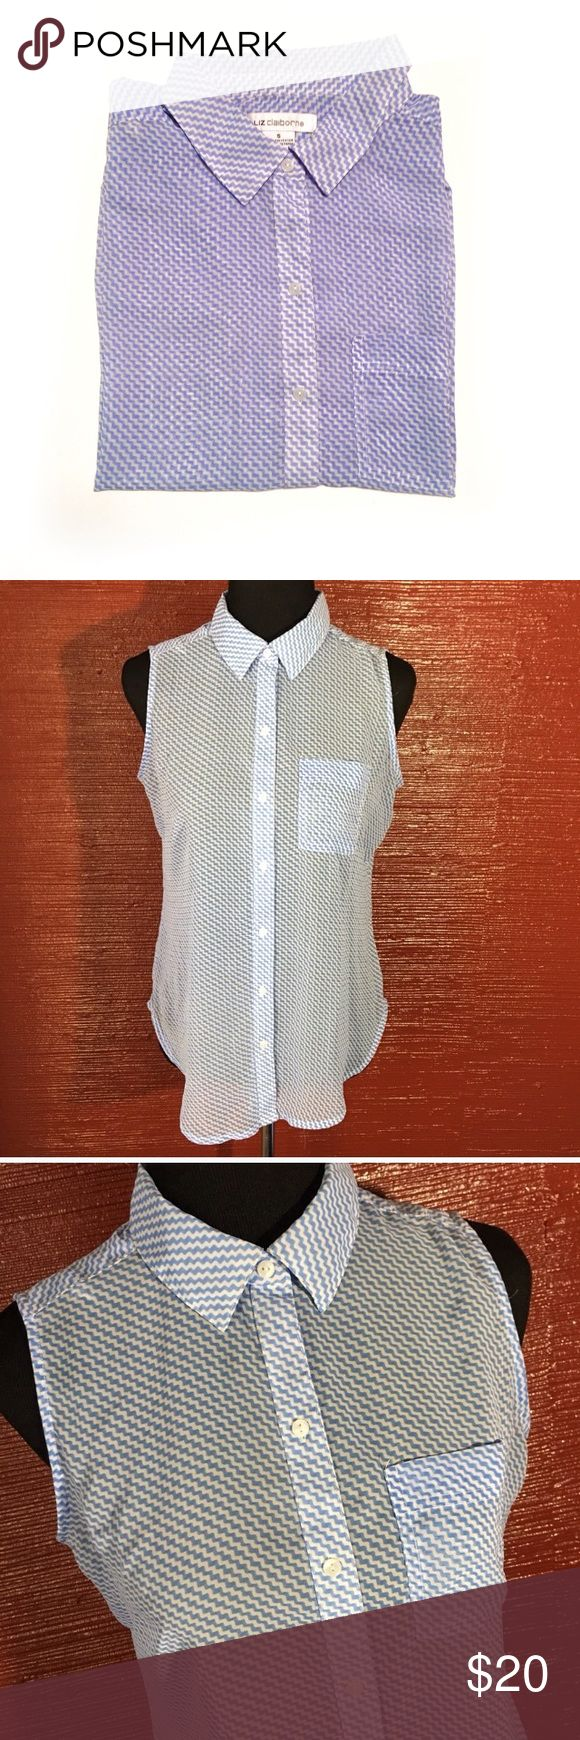 Liz Claiborne Button Down Sleeveless Shirt * Liz Claiborne brand * Sleeveless tank top style * Light blue and white  * Button down * Front chest pocket * Sheer material (you will need to wear a cami underneath) * Size small * Made in Vietnam  * 100% polyester  * Pre-Owned, excellent condition Liz Claiborne Tops Blouses